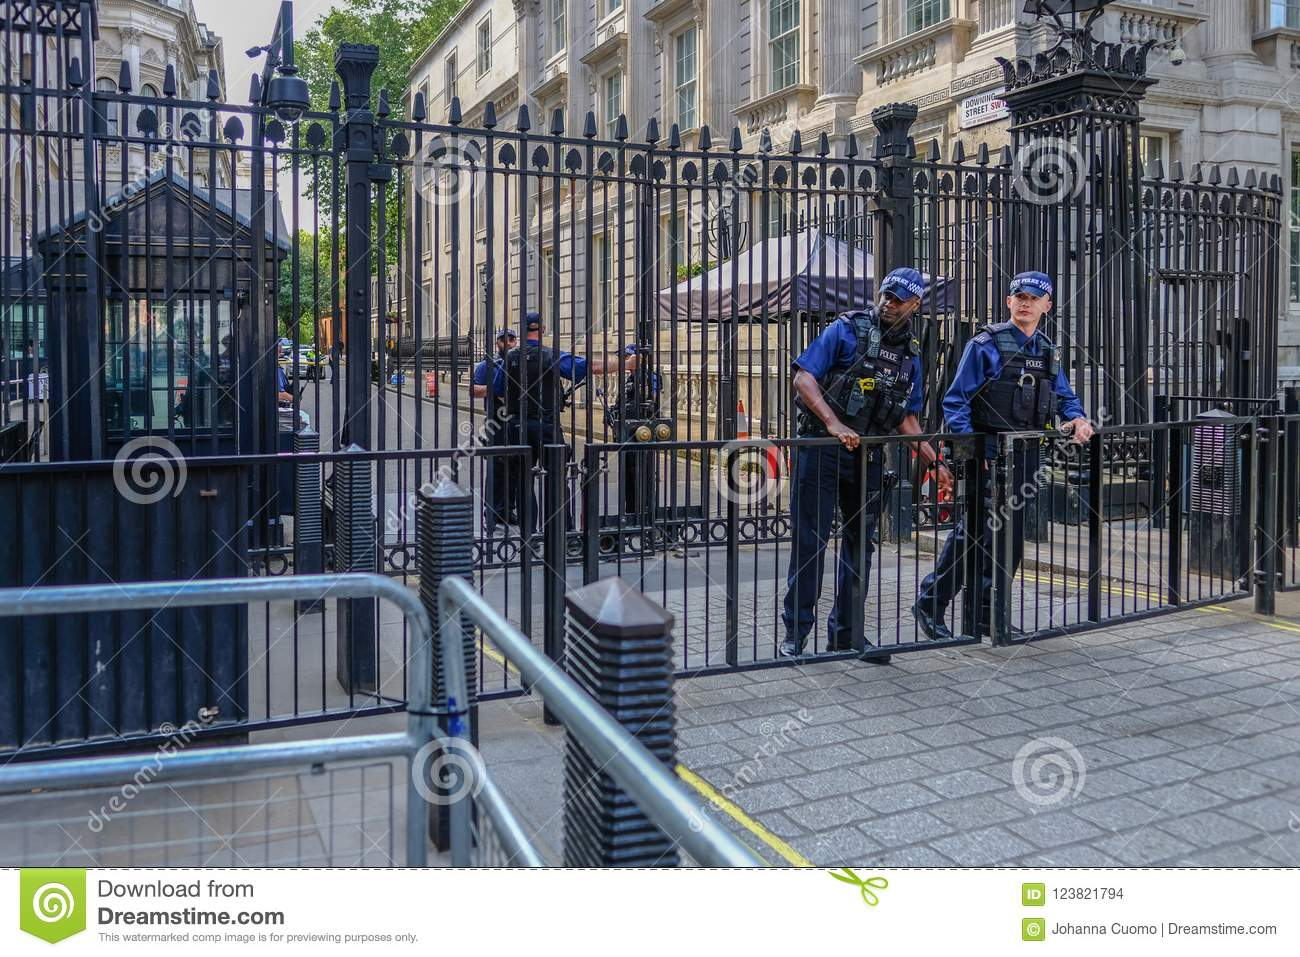 Black steel closed gates protecting the entrace to Downing Street, with armed police.